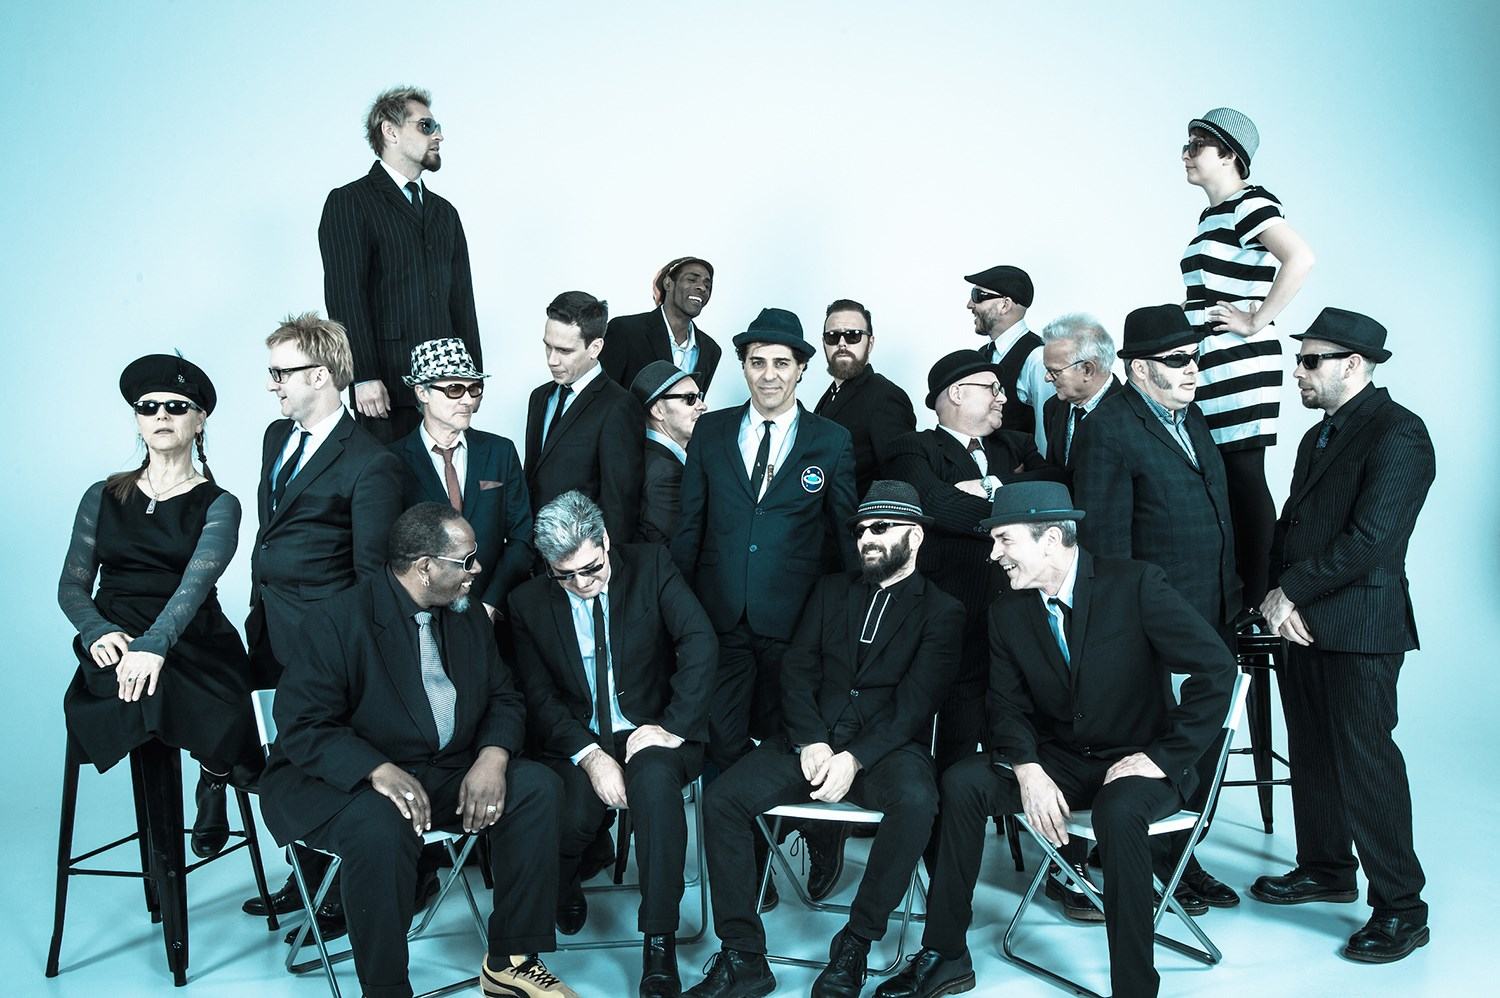 12 August - Melbourne Ska Orchestra: Their unique take on the genre of Ska has wowed audiences around the world